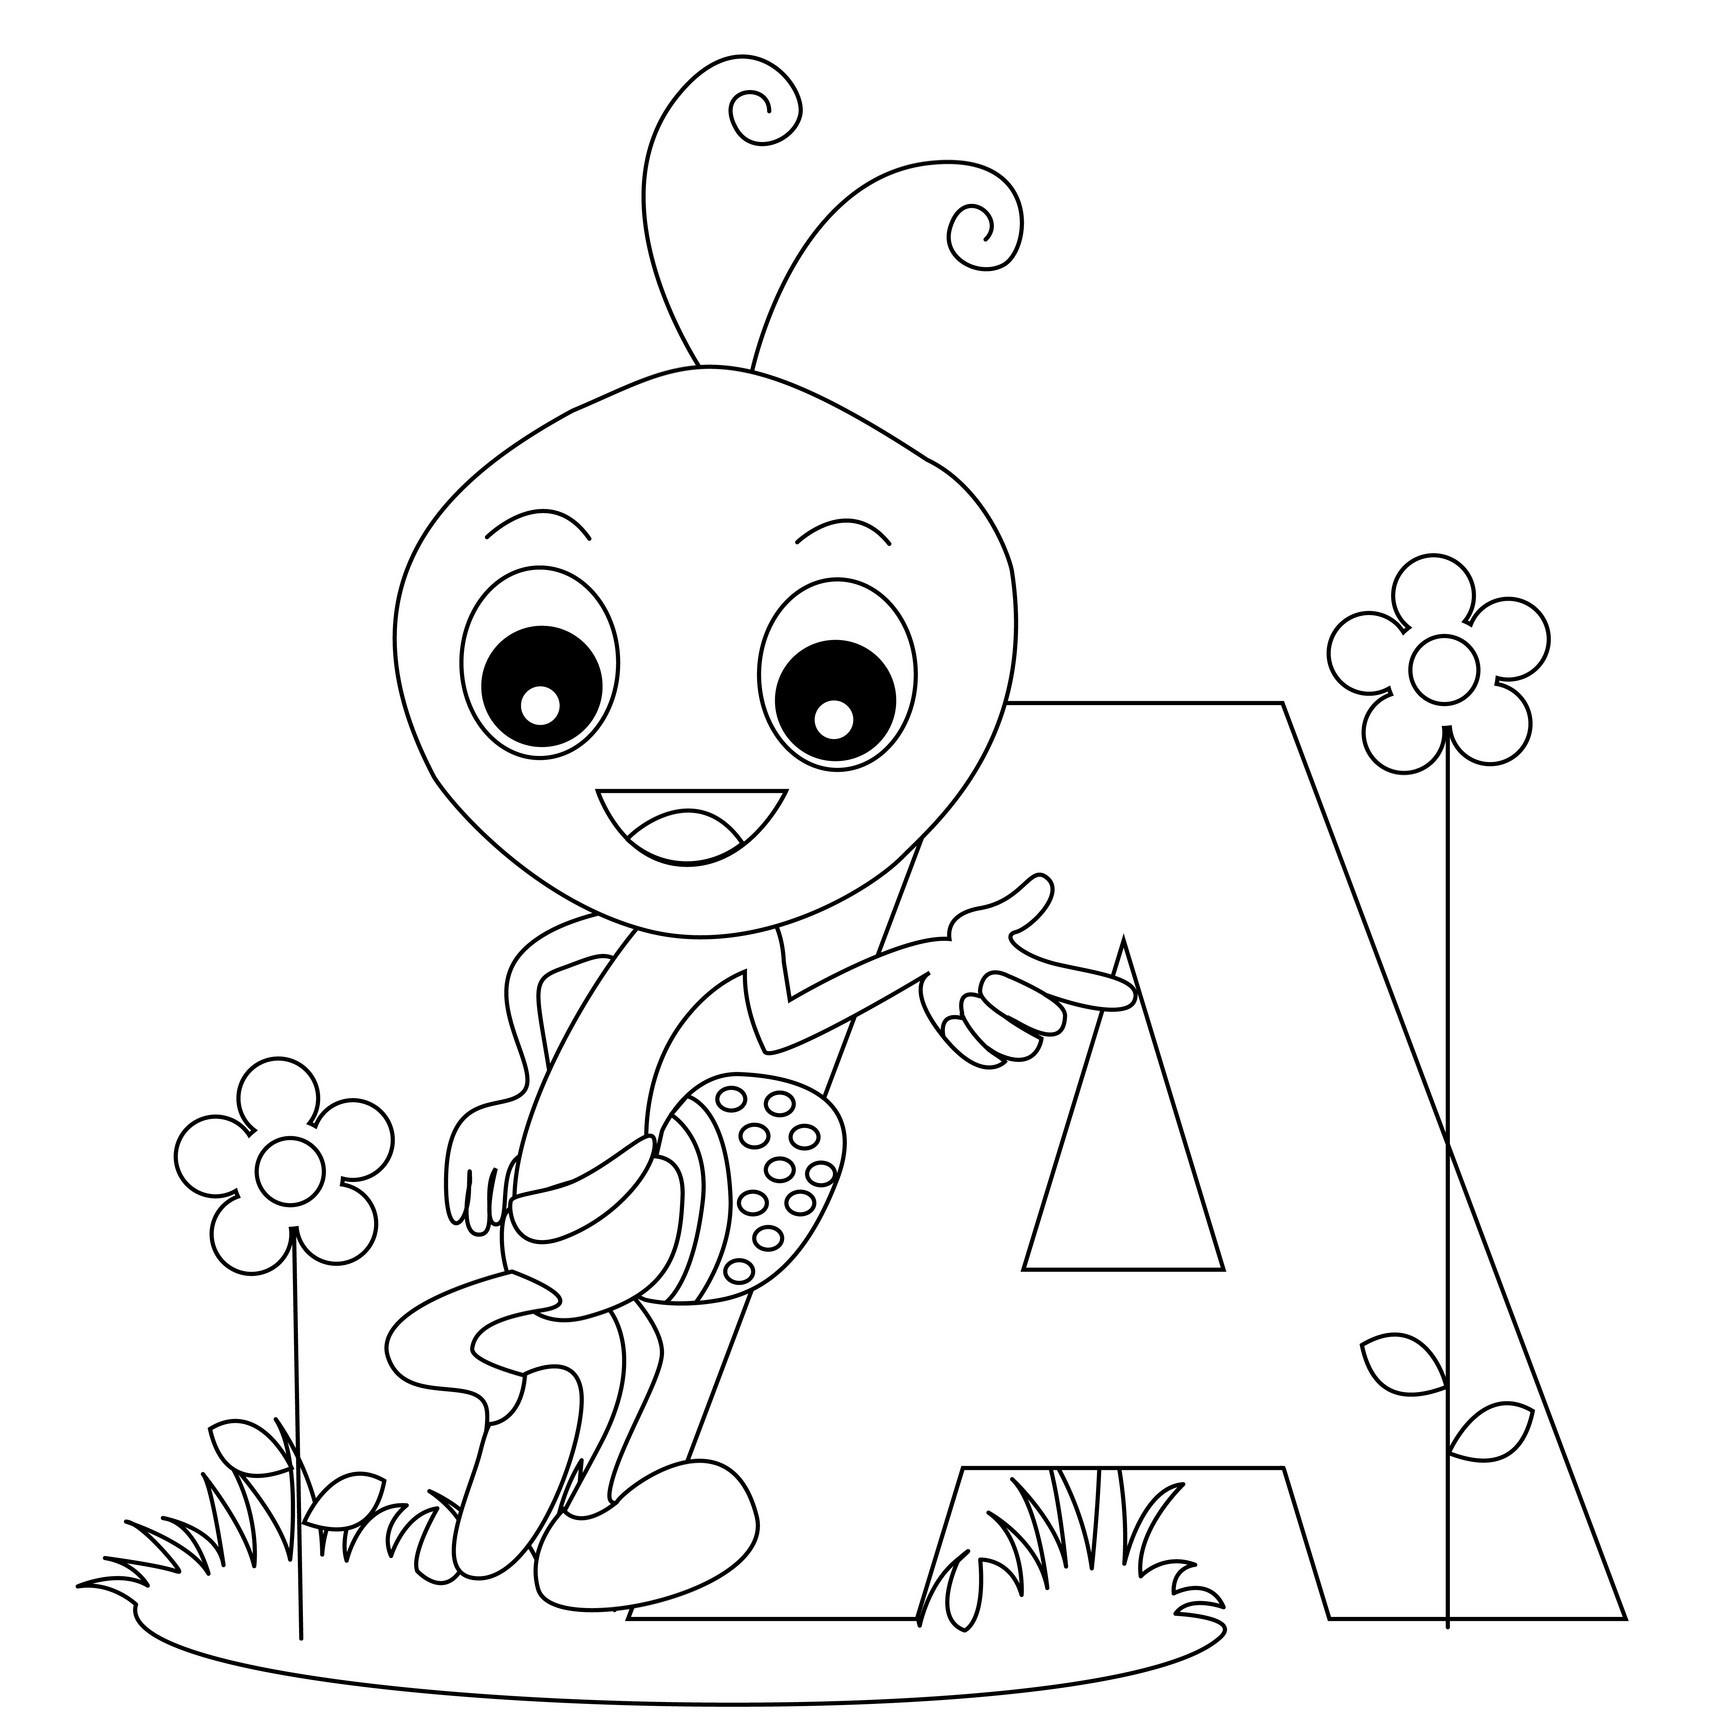 abc coloring pages sheets energy - photo#31